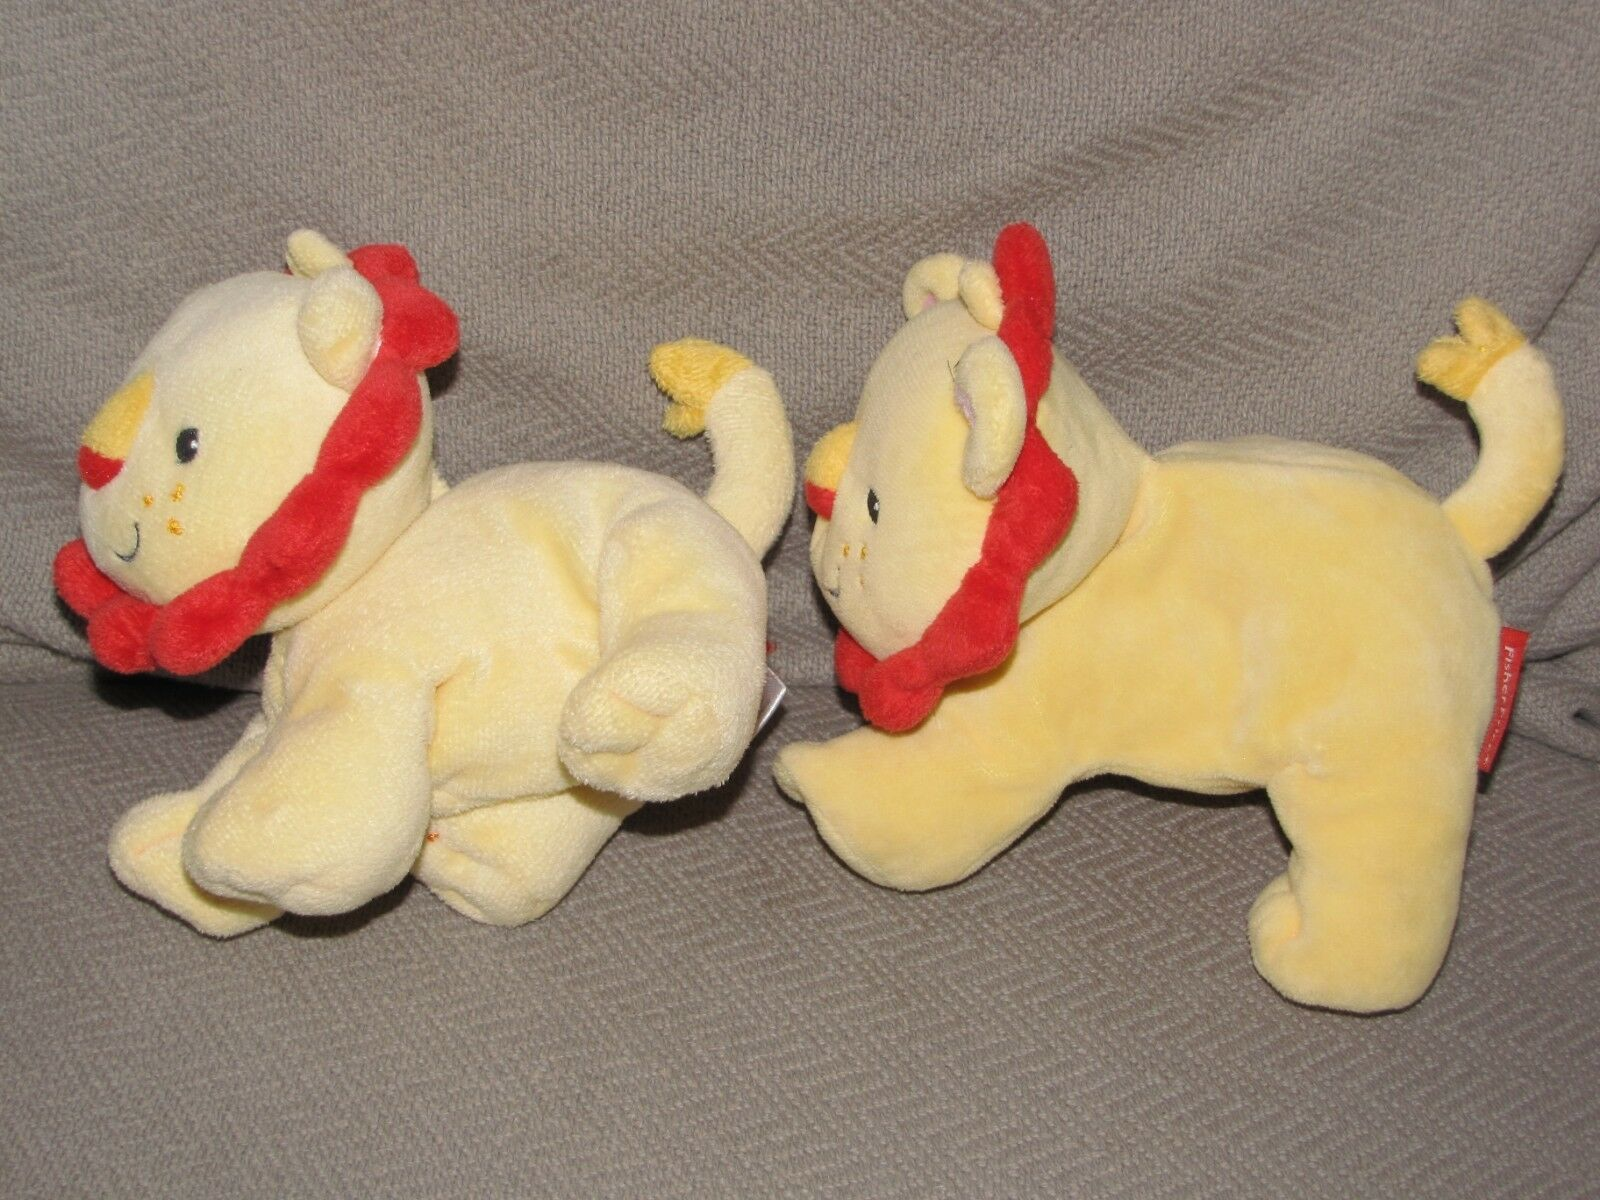 """Fisher Price Yellow Red Lion Plush Rattle Soft Toy Little Nuzzler 6"""" Crinkle x 2 image 2"""